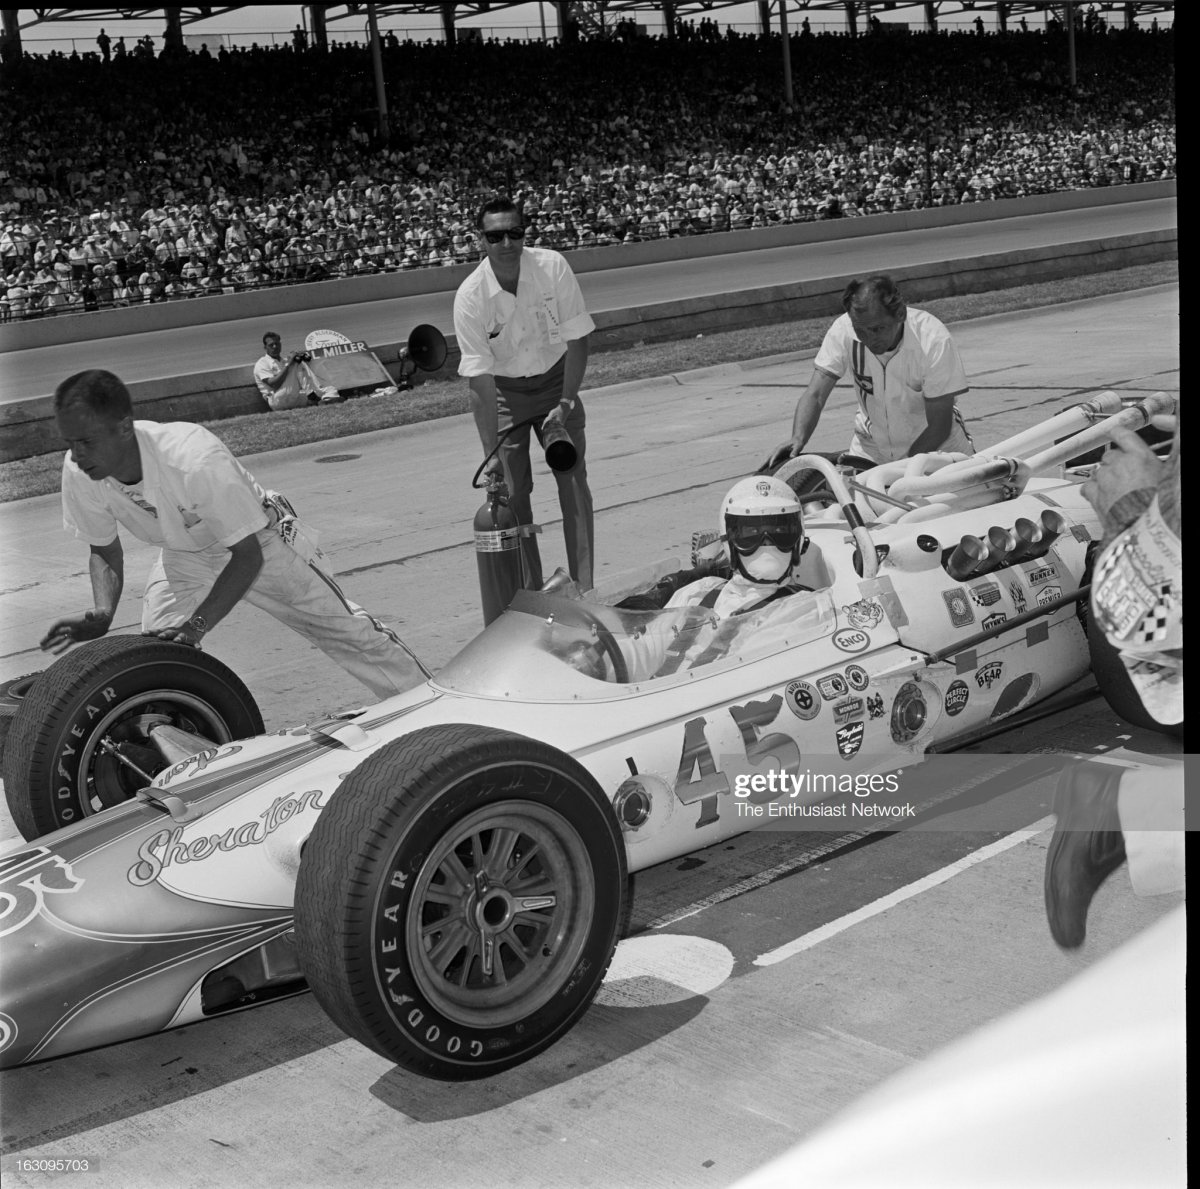 49  1965 Indianapolis 500. Al Unser of the Ansted-Th.jpg